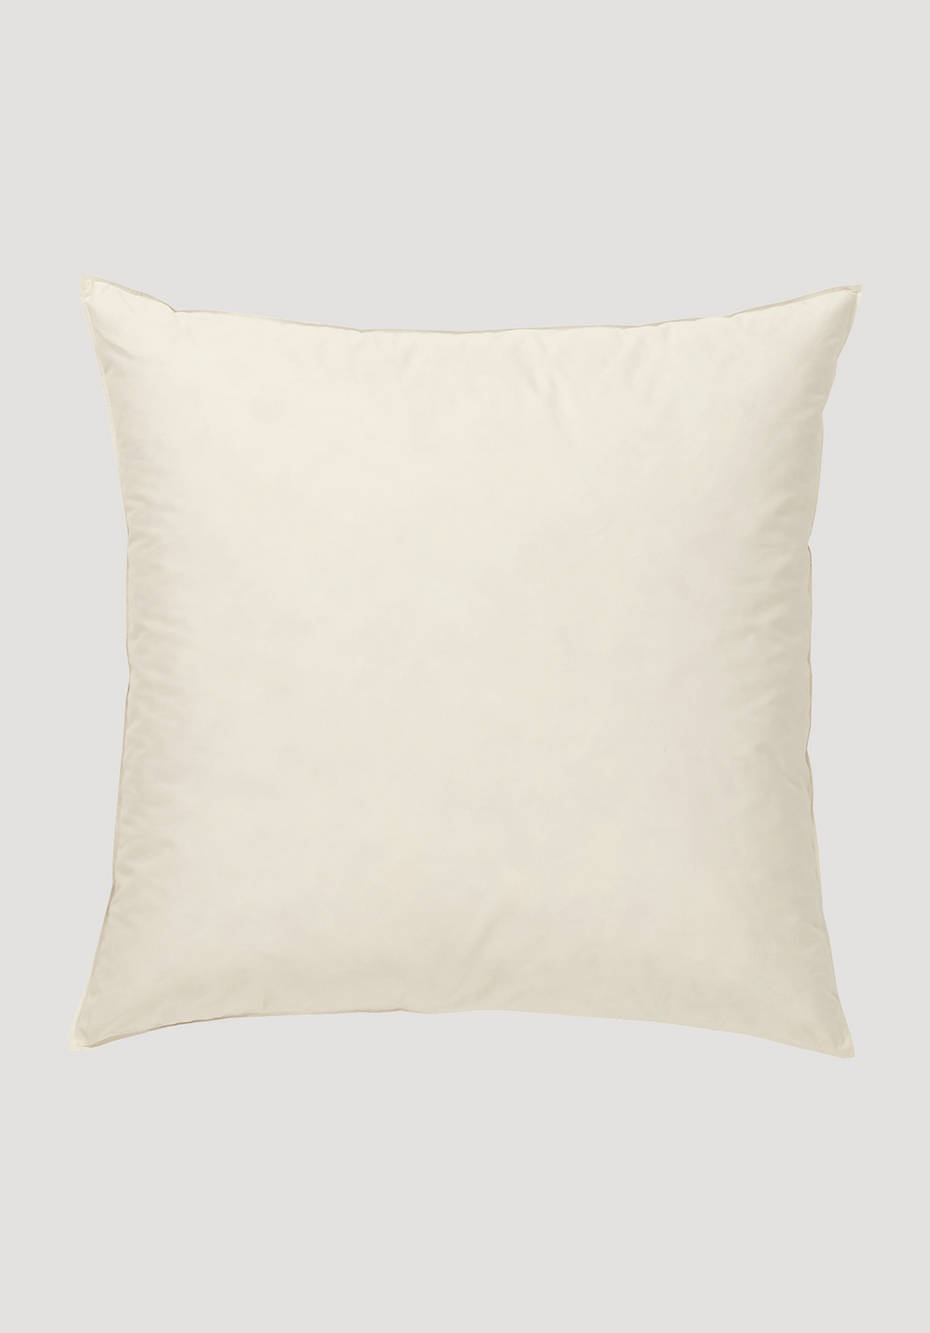 Classic pillow with feathers and down